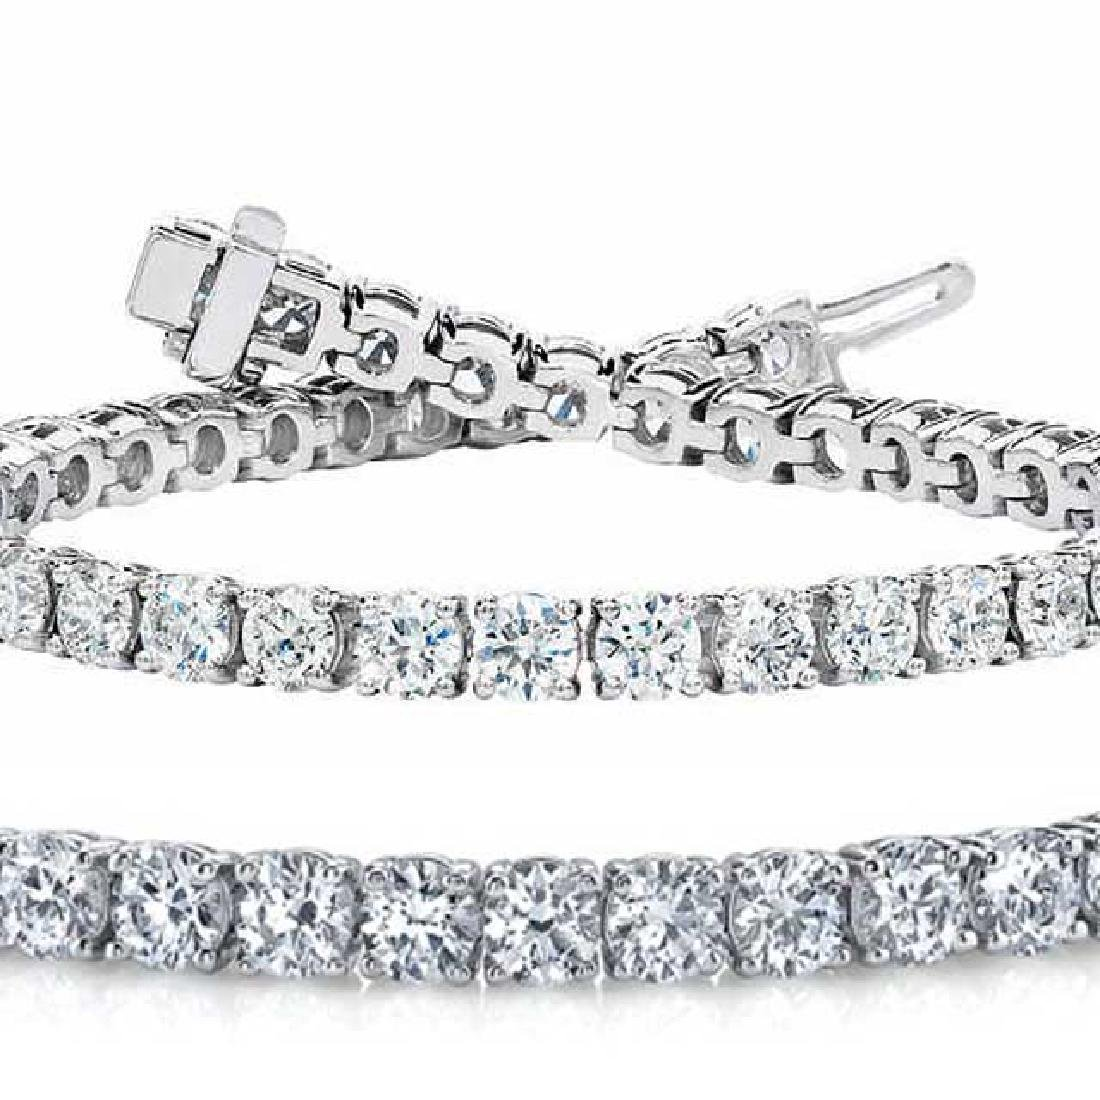 Natural 10.02ct VS-SI Diamond Tennis Bracelet Platinum